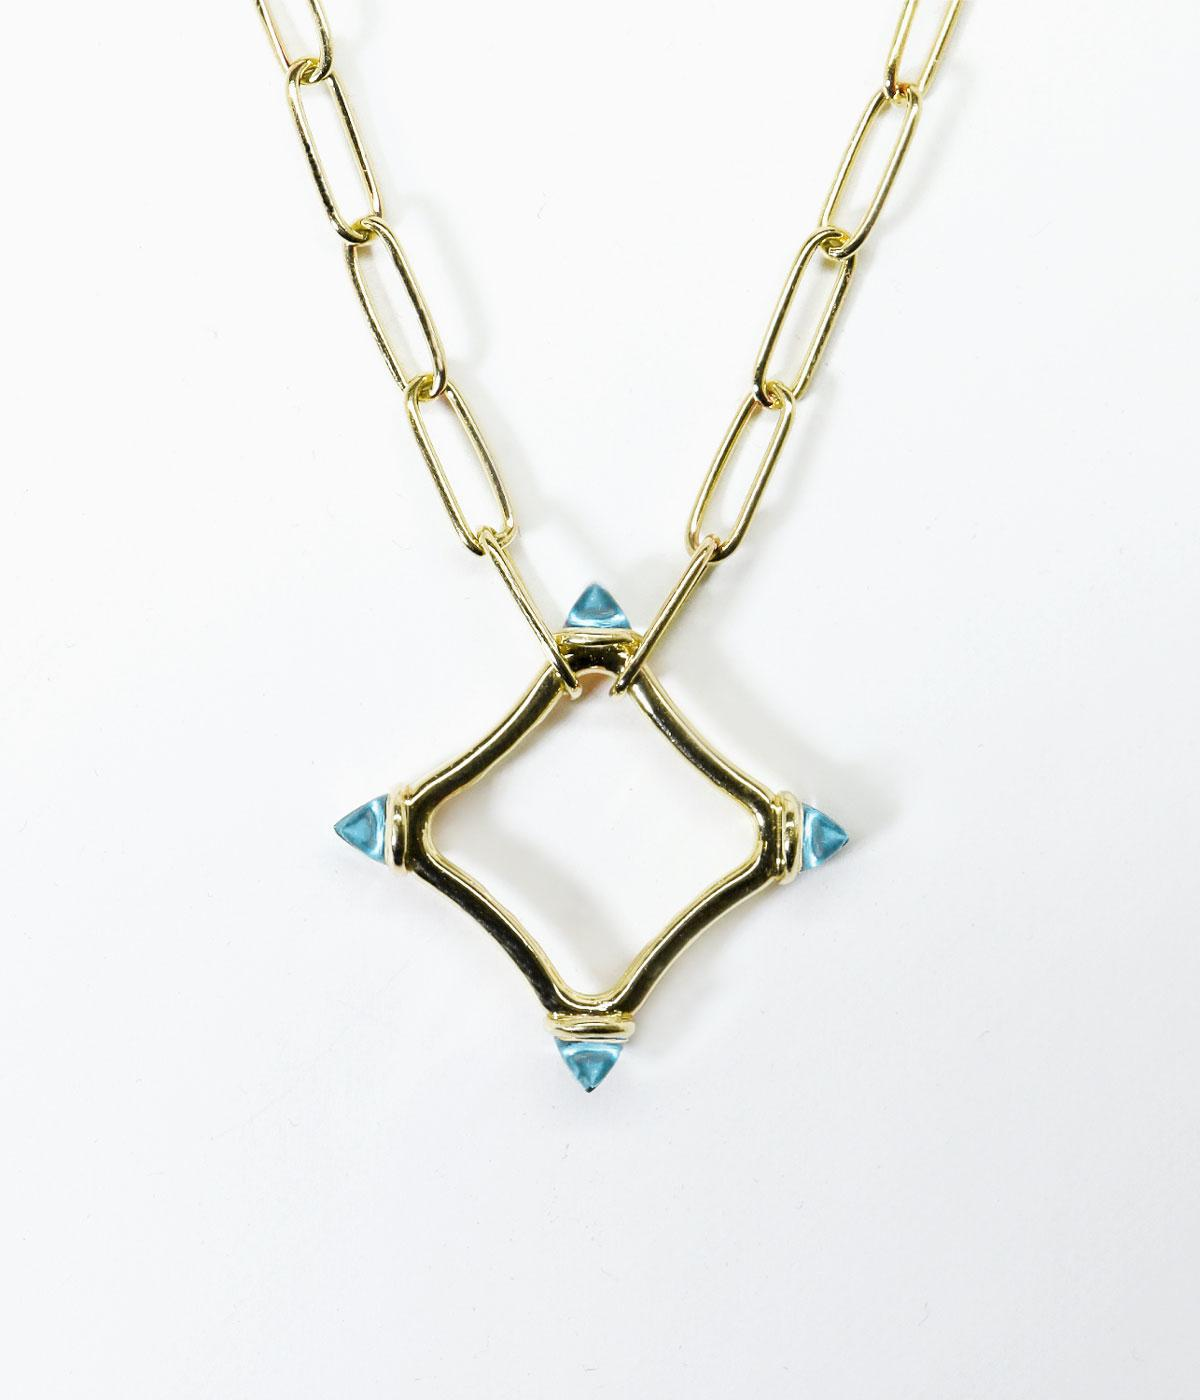 Gold chain necklace with a blue-tipped gold star hanging down